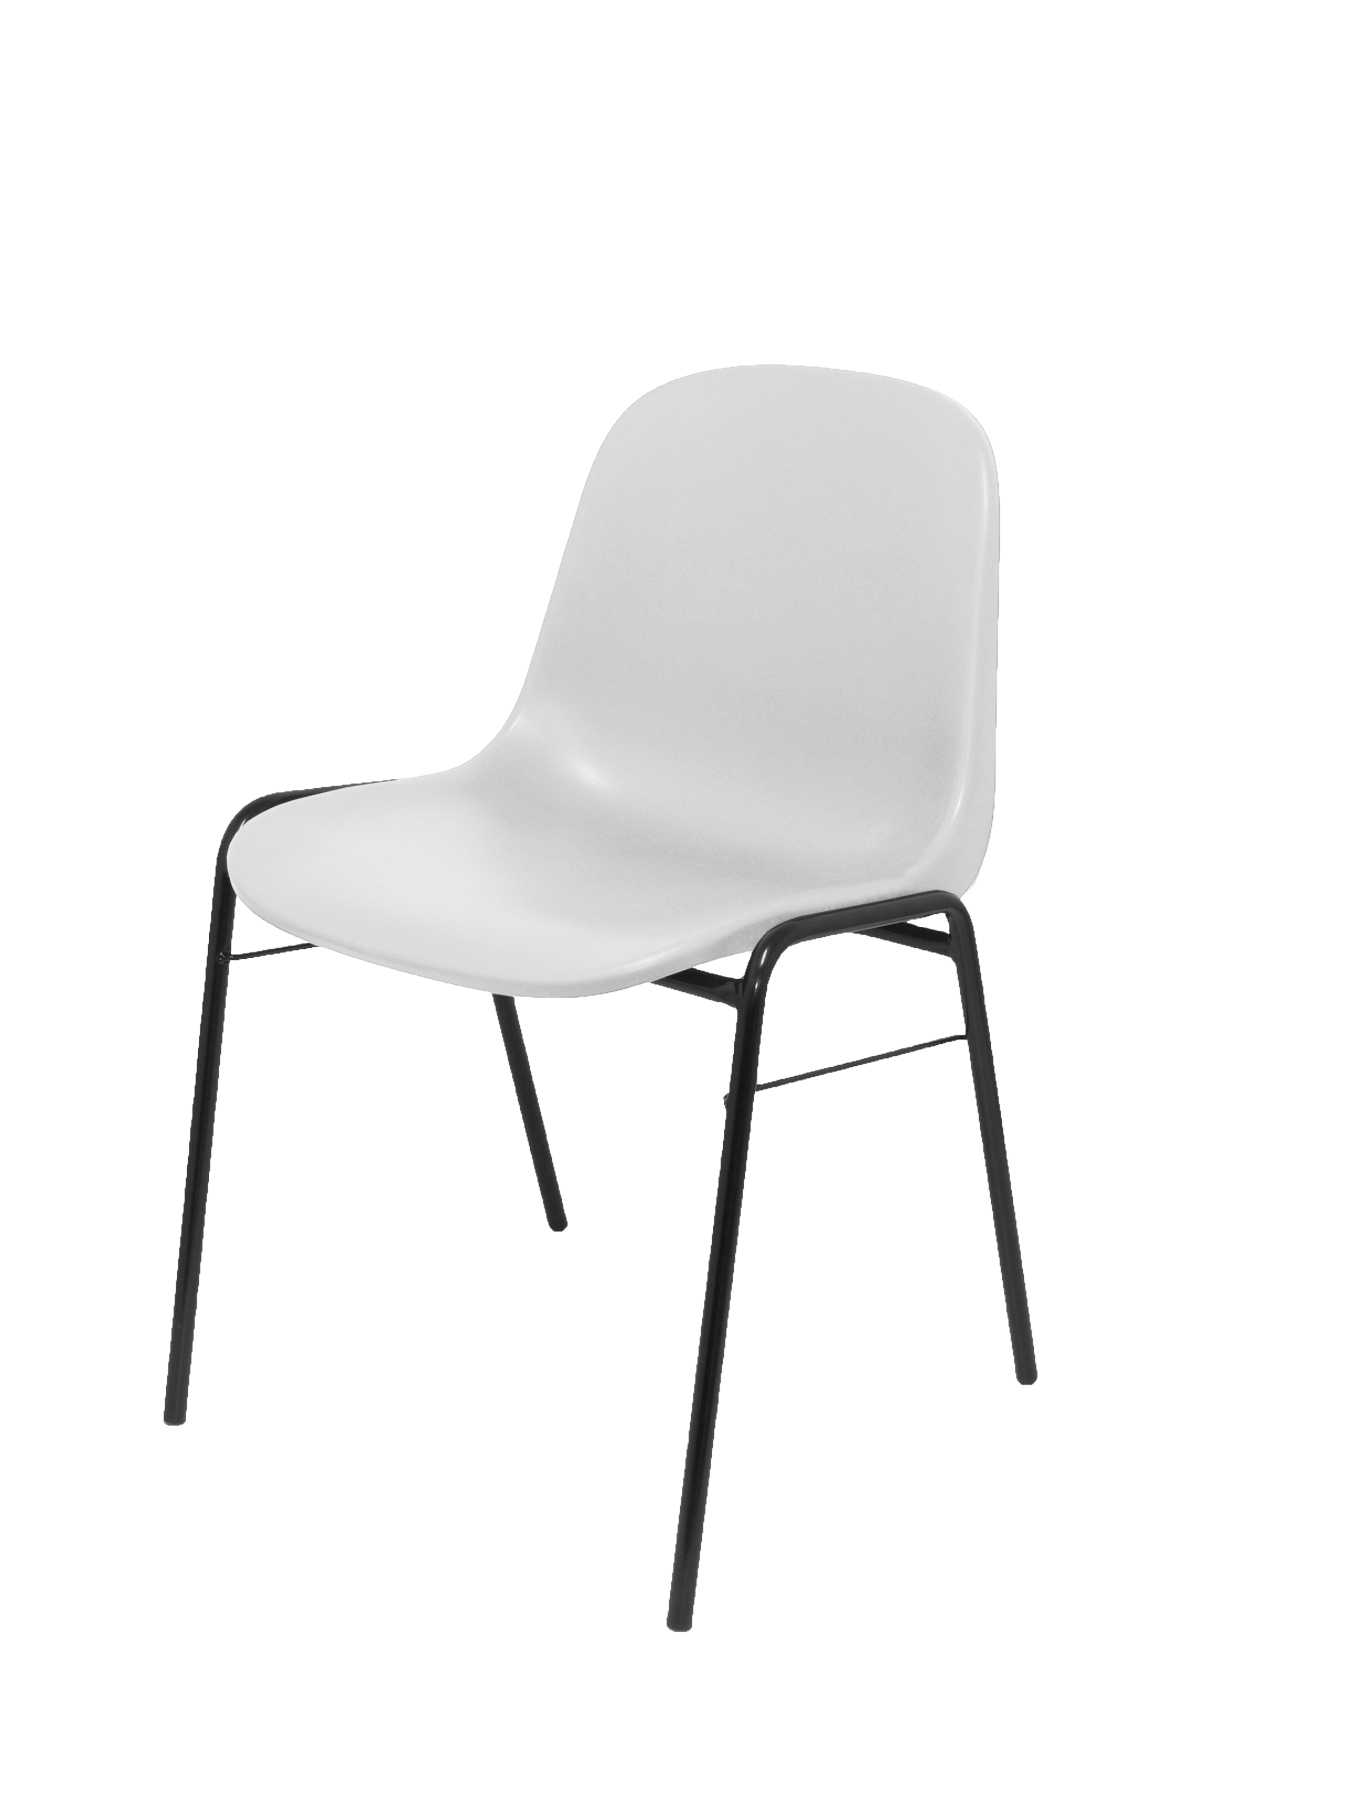 Pack 4 guest chairs desk ergonomic  Stackable and with Negro up seat and backstop structure PVC white color TAPHOLE|Living Room Sets| |  - title=